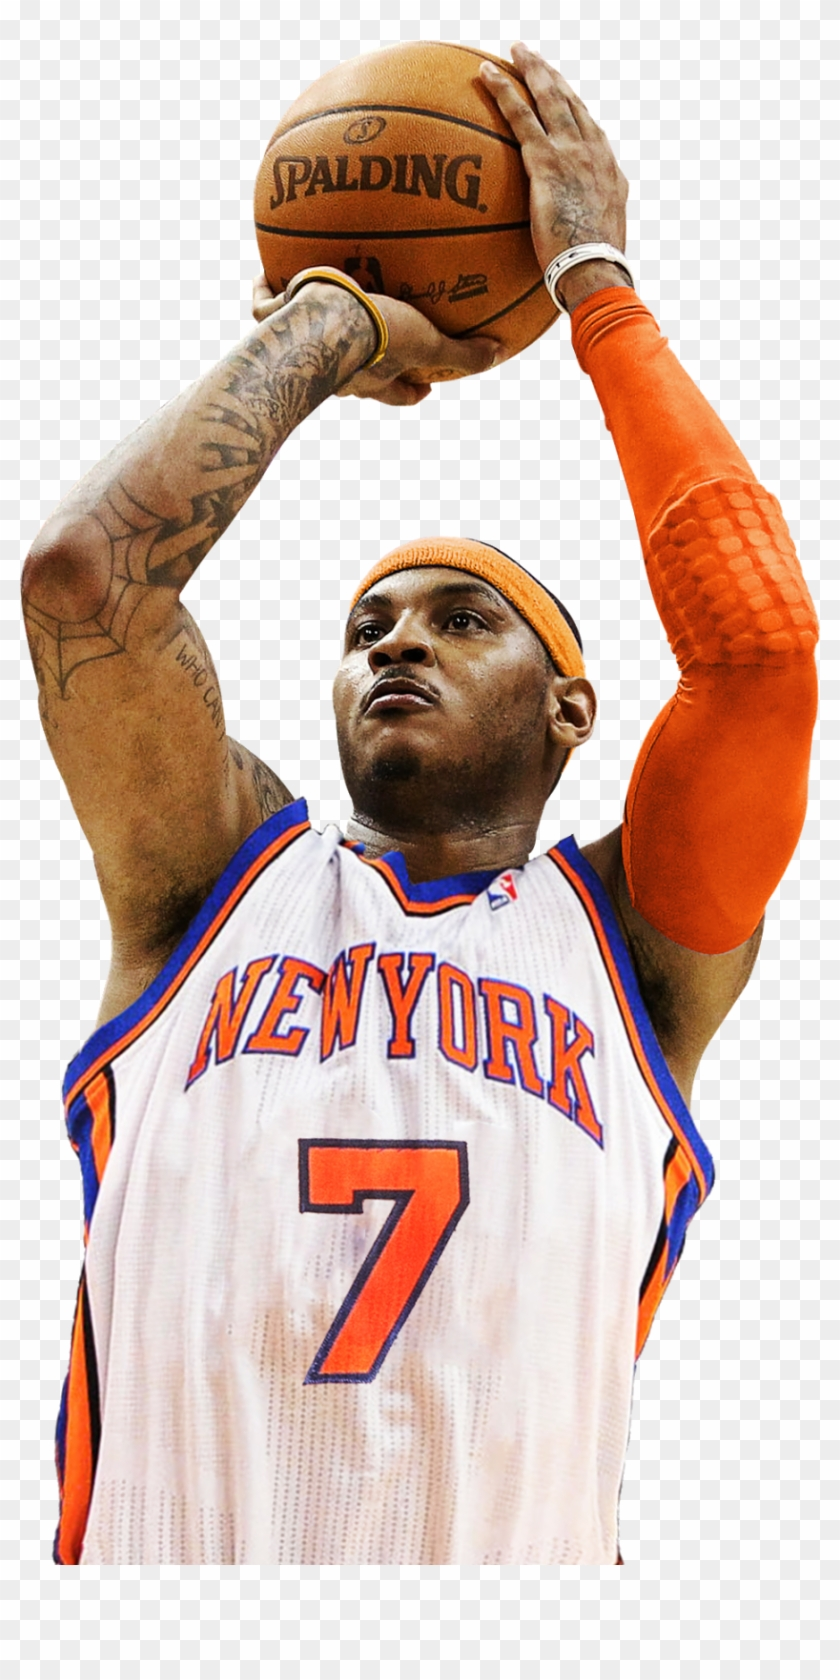 Carmelo Anthony Png Hd - Carmelo Anthony New York Knicks, HD Png Download (#652695), Free ...